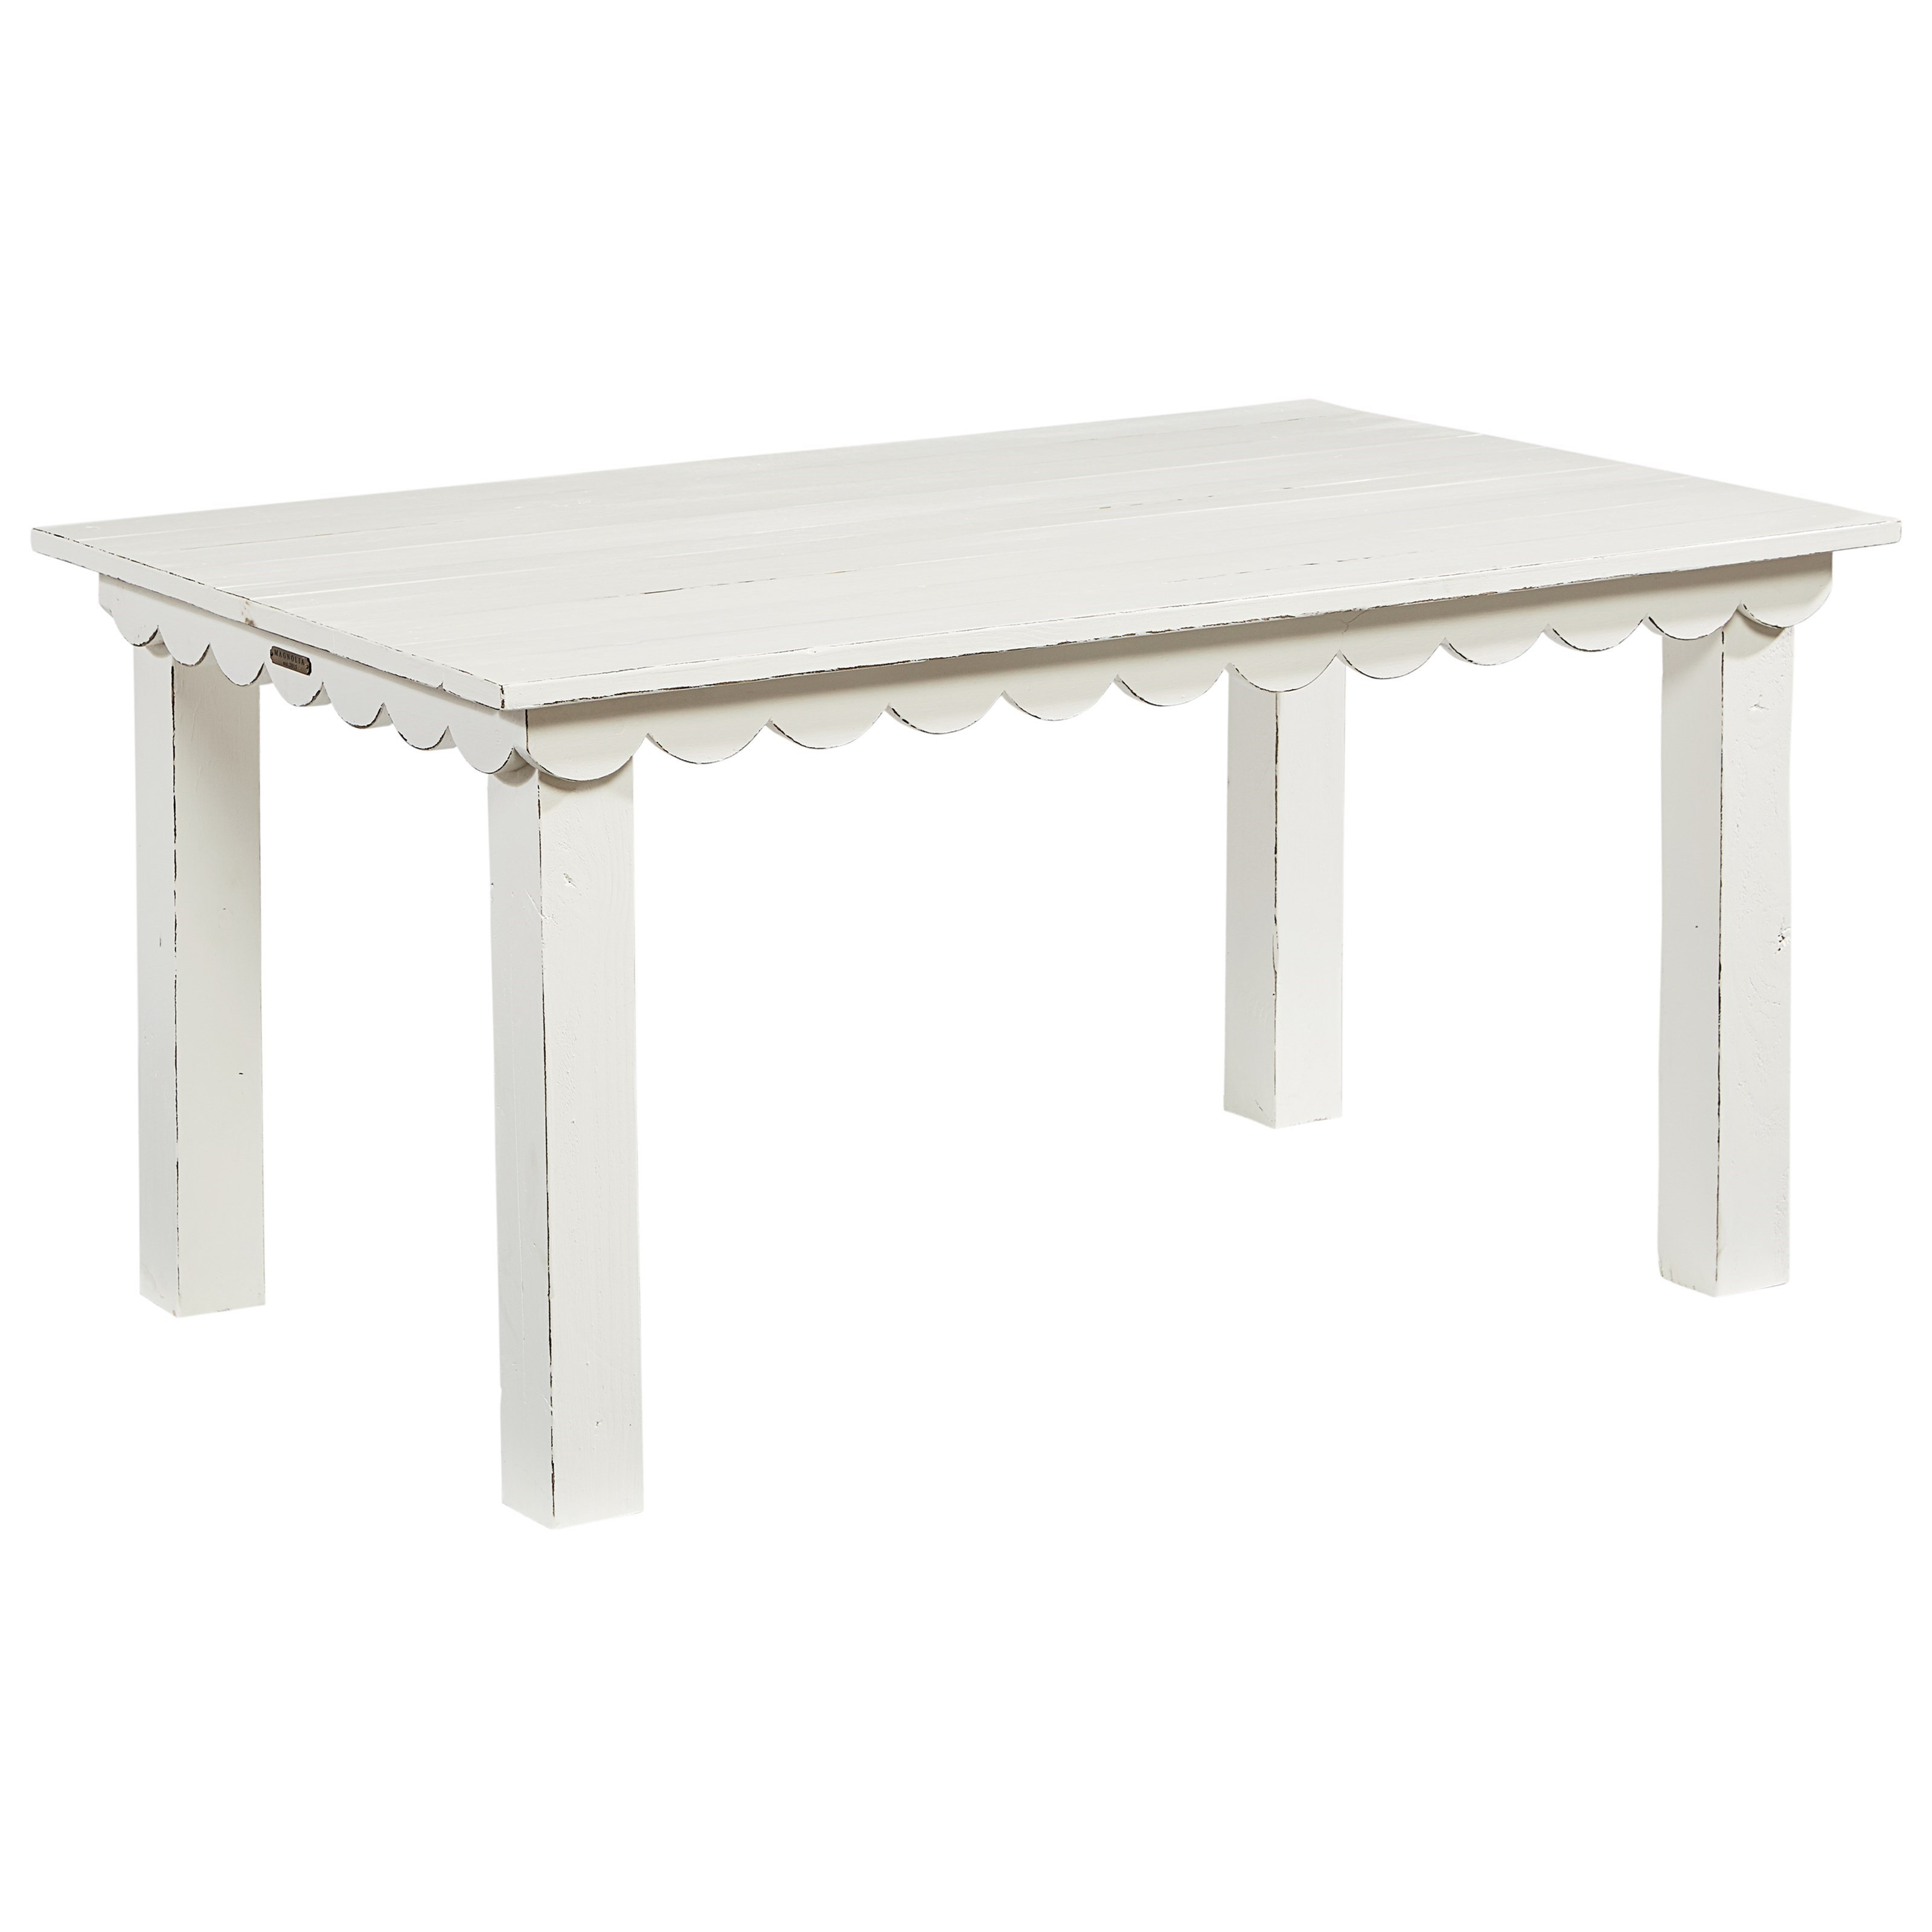 Magnolia Home by Joanna Gaines Farmhouse Kid's Haven Table - Item Number: 6170601B